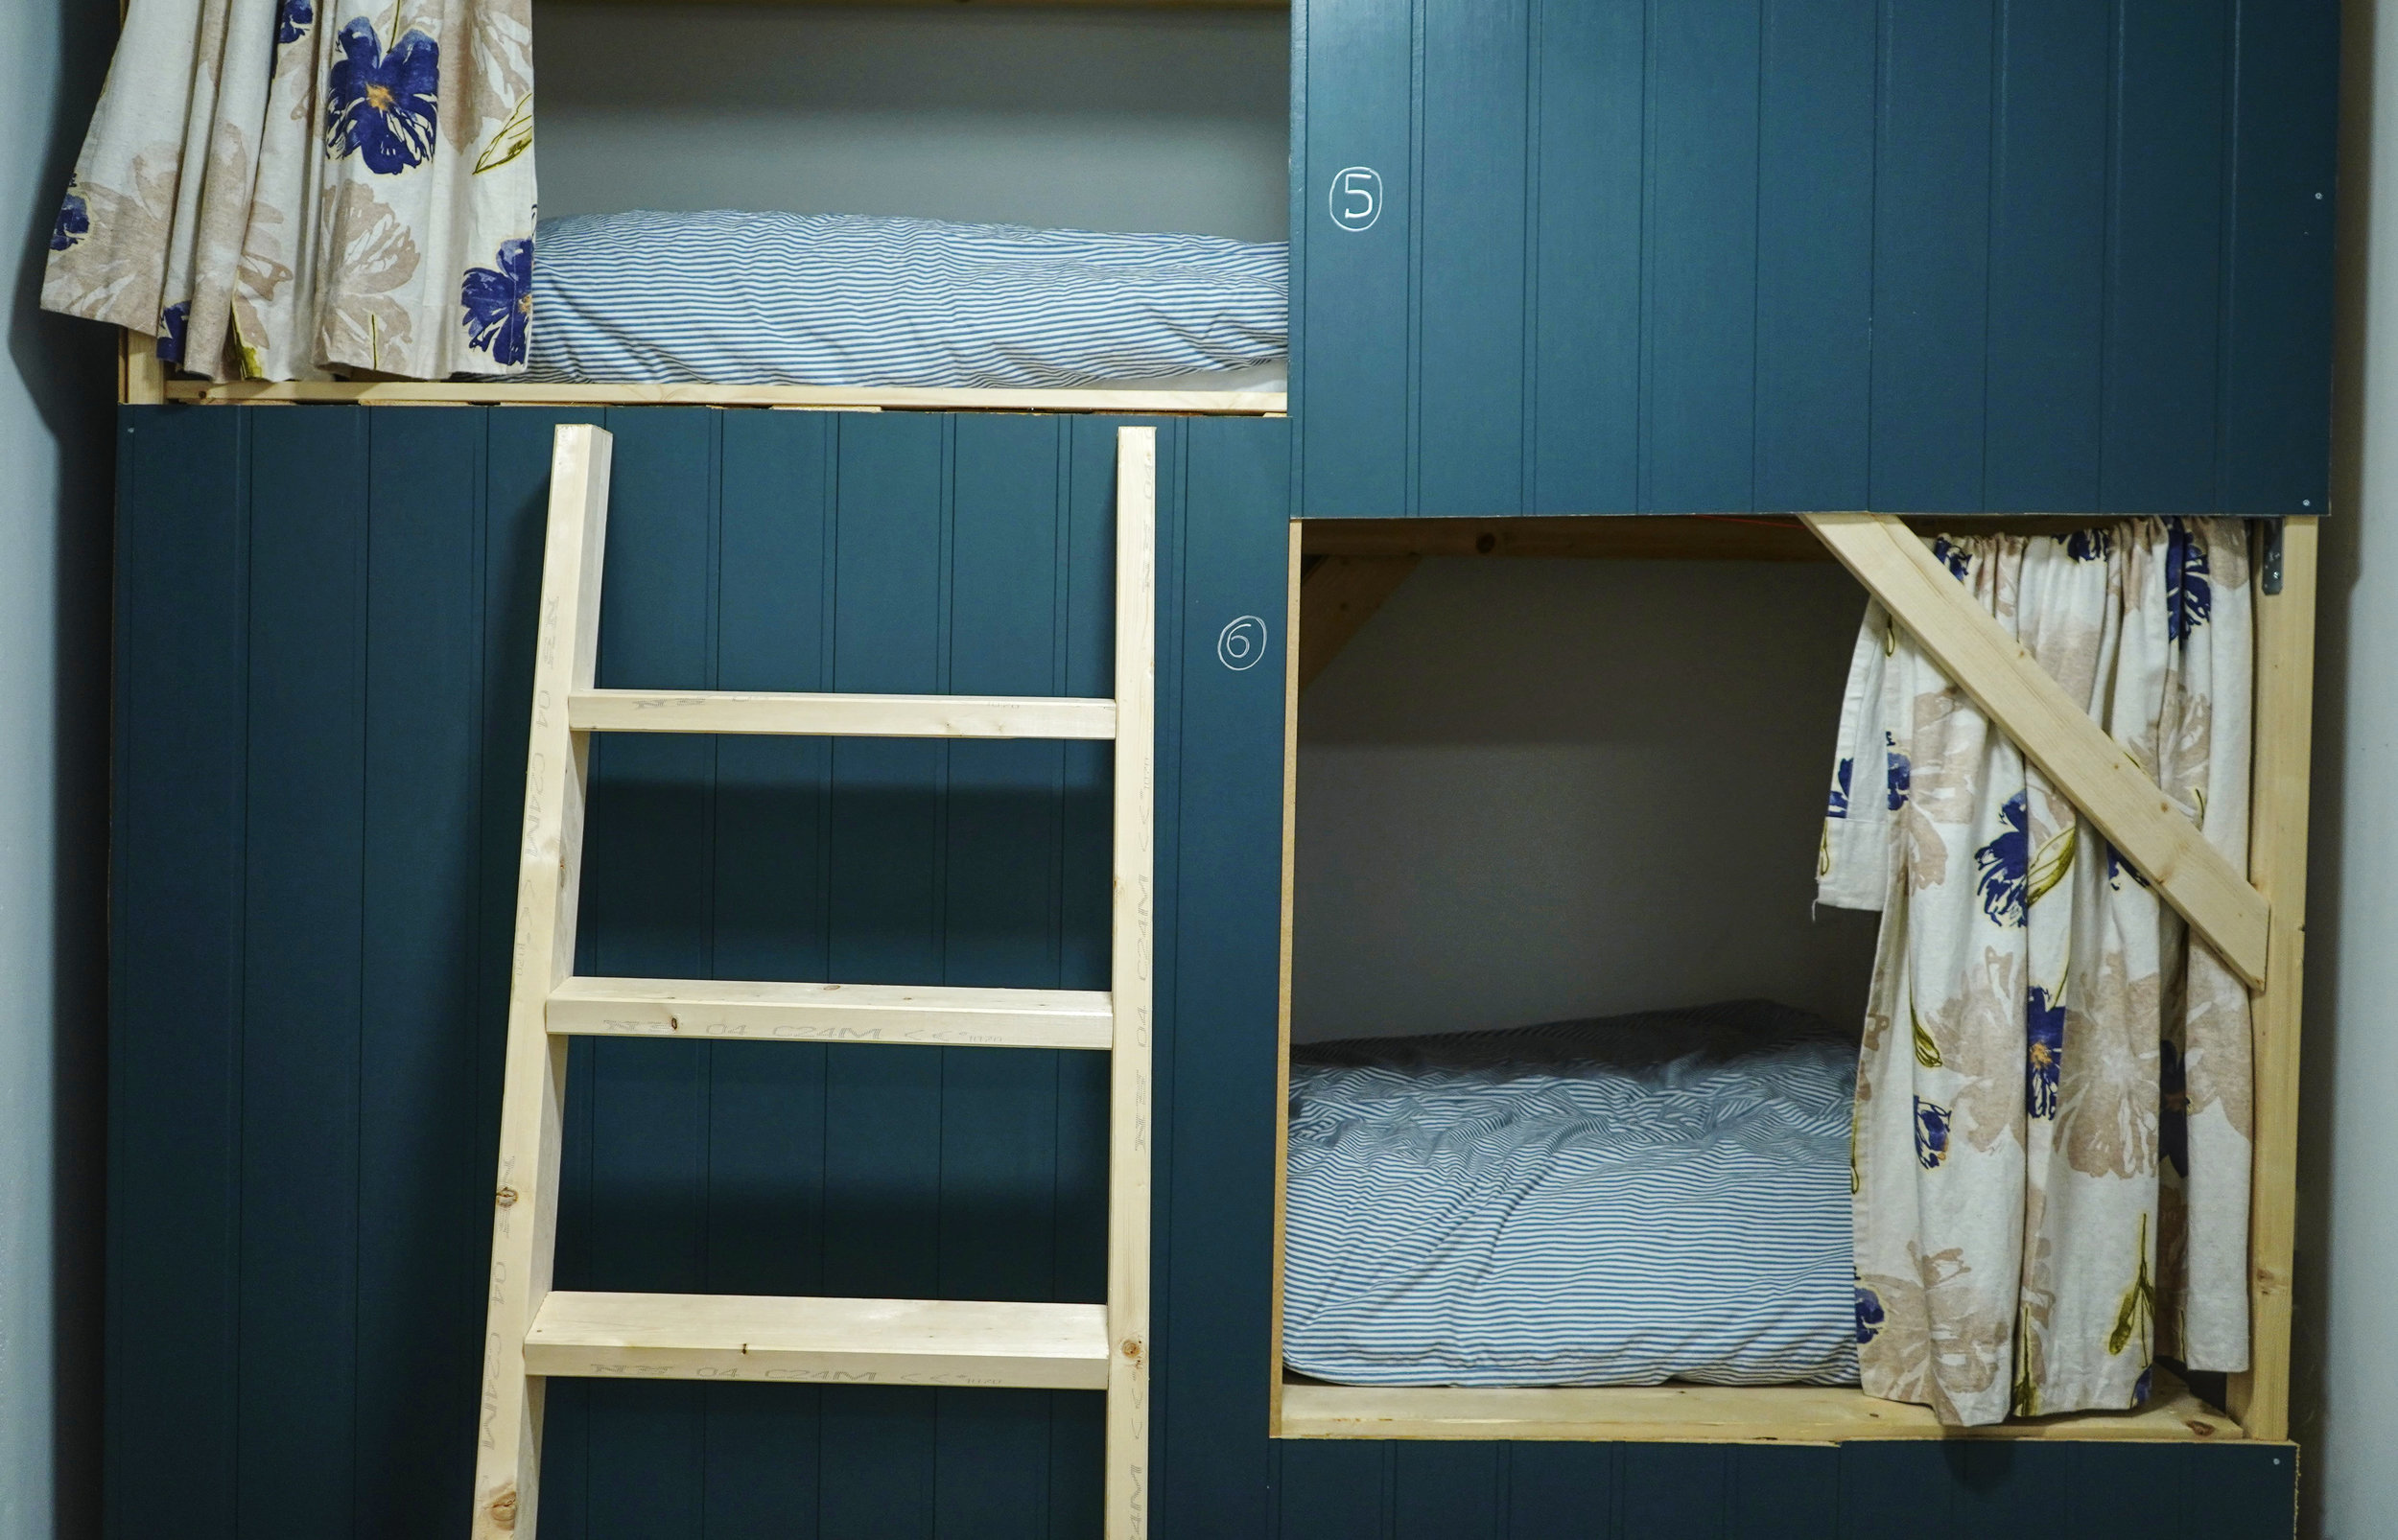 Capsule Dorm - The perfect combination between affordable accommodation and privacy. Our organic wooden capsules are nice, cosy and even has its own power plugs & light inside.1 Week - 374,50 €2 Weeks - 599,20 €1 Month - 1075,50 €2 Months - 1605 €